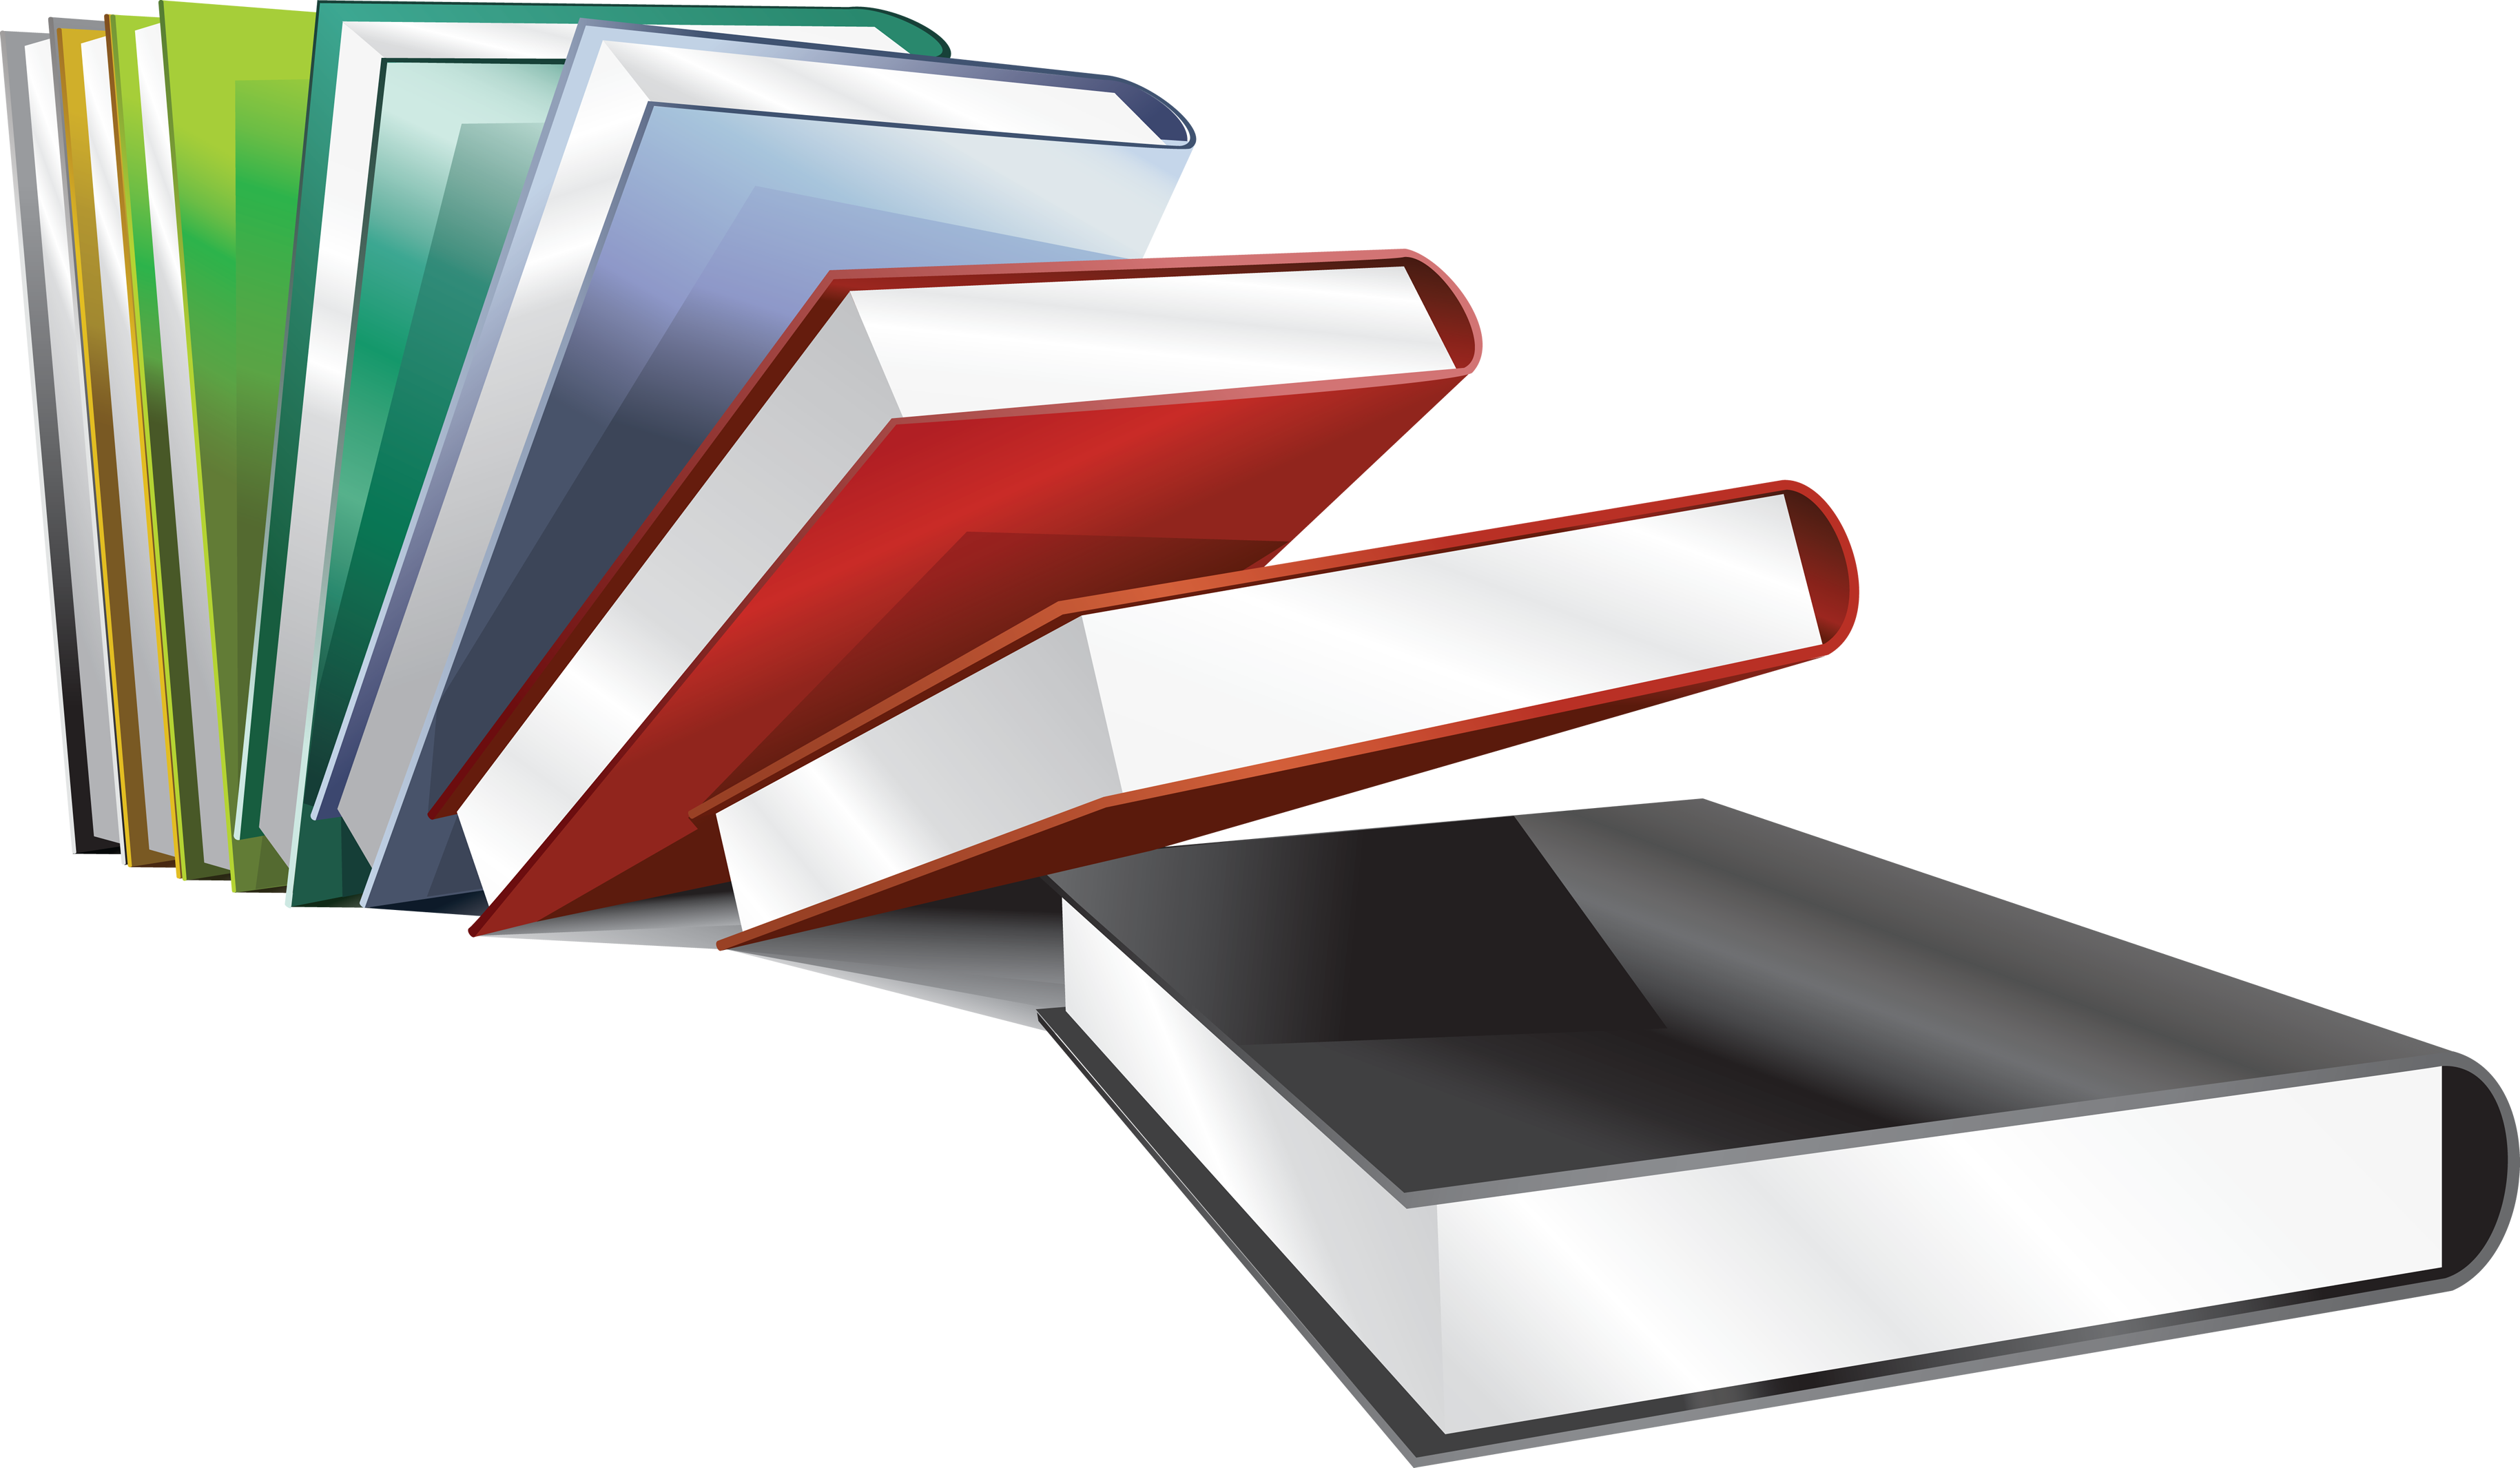 Books PNG image with transparency background - Book PNG